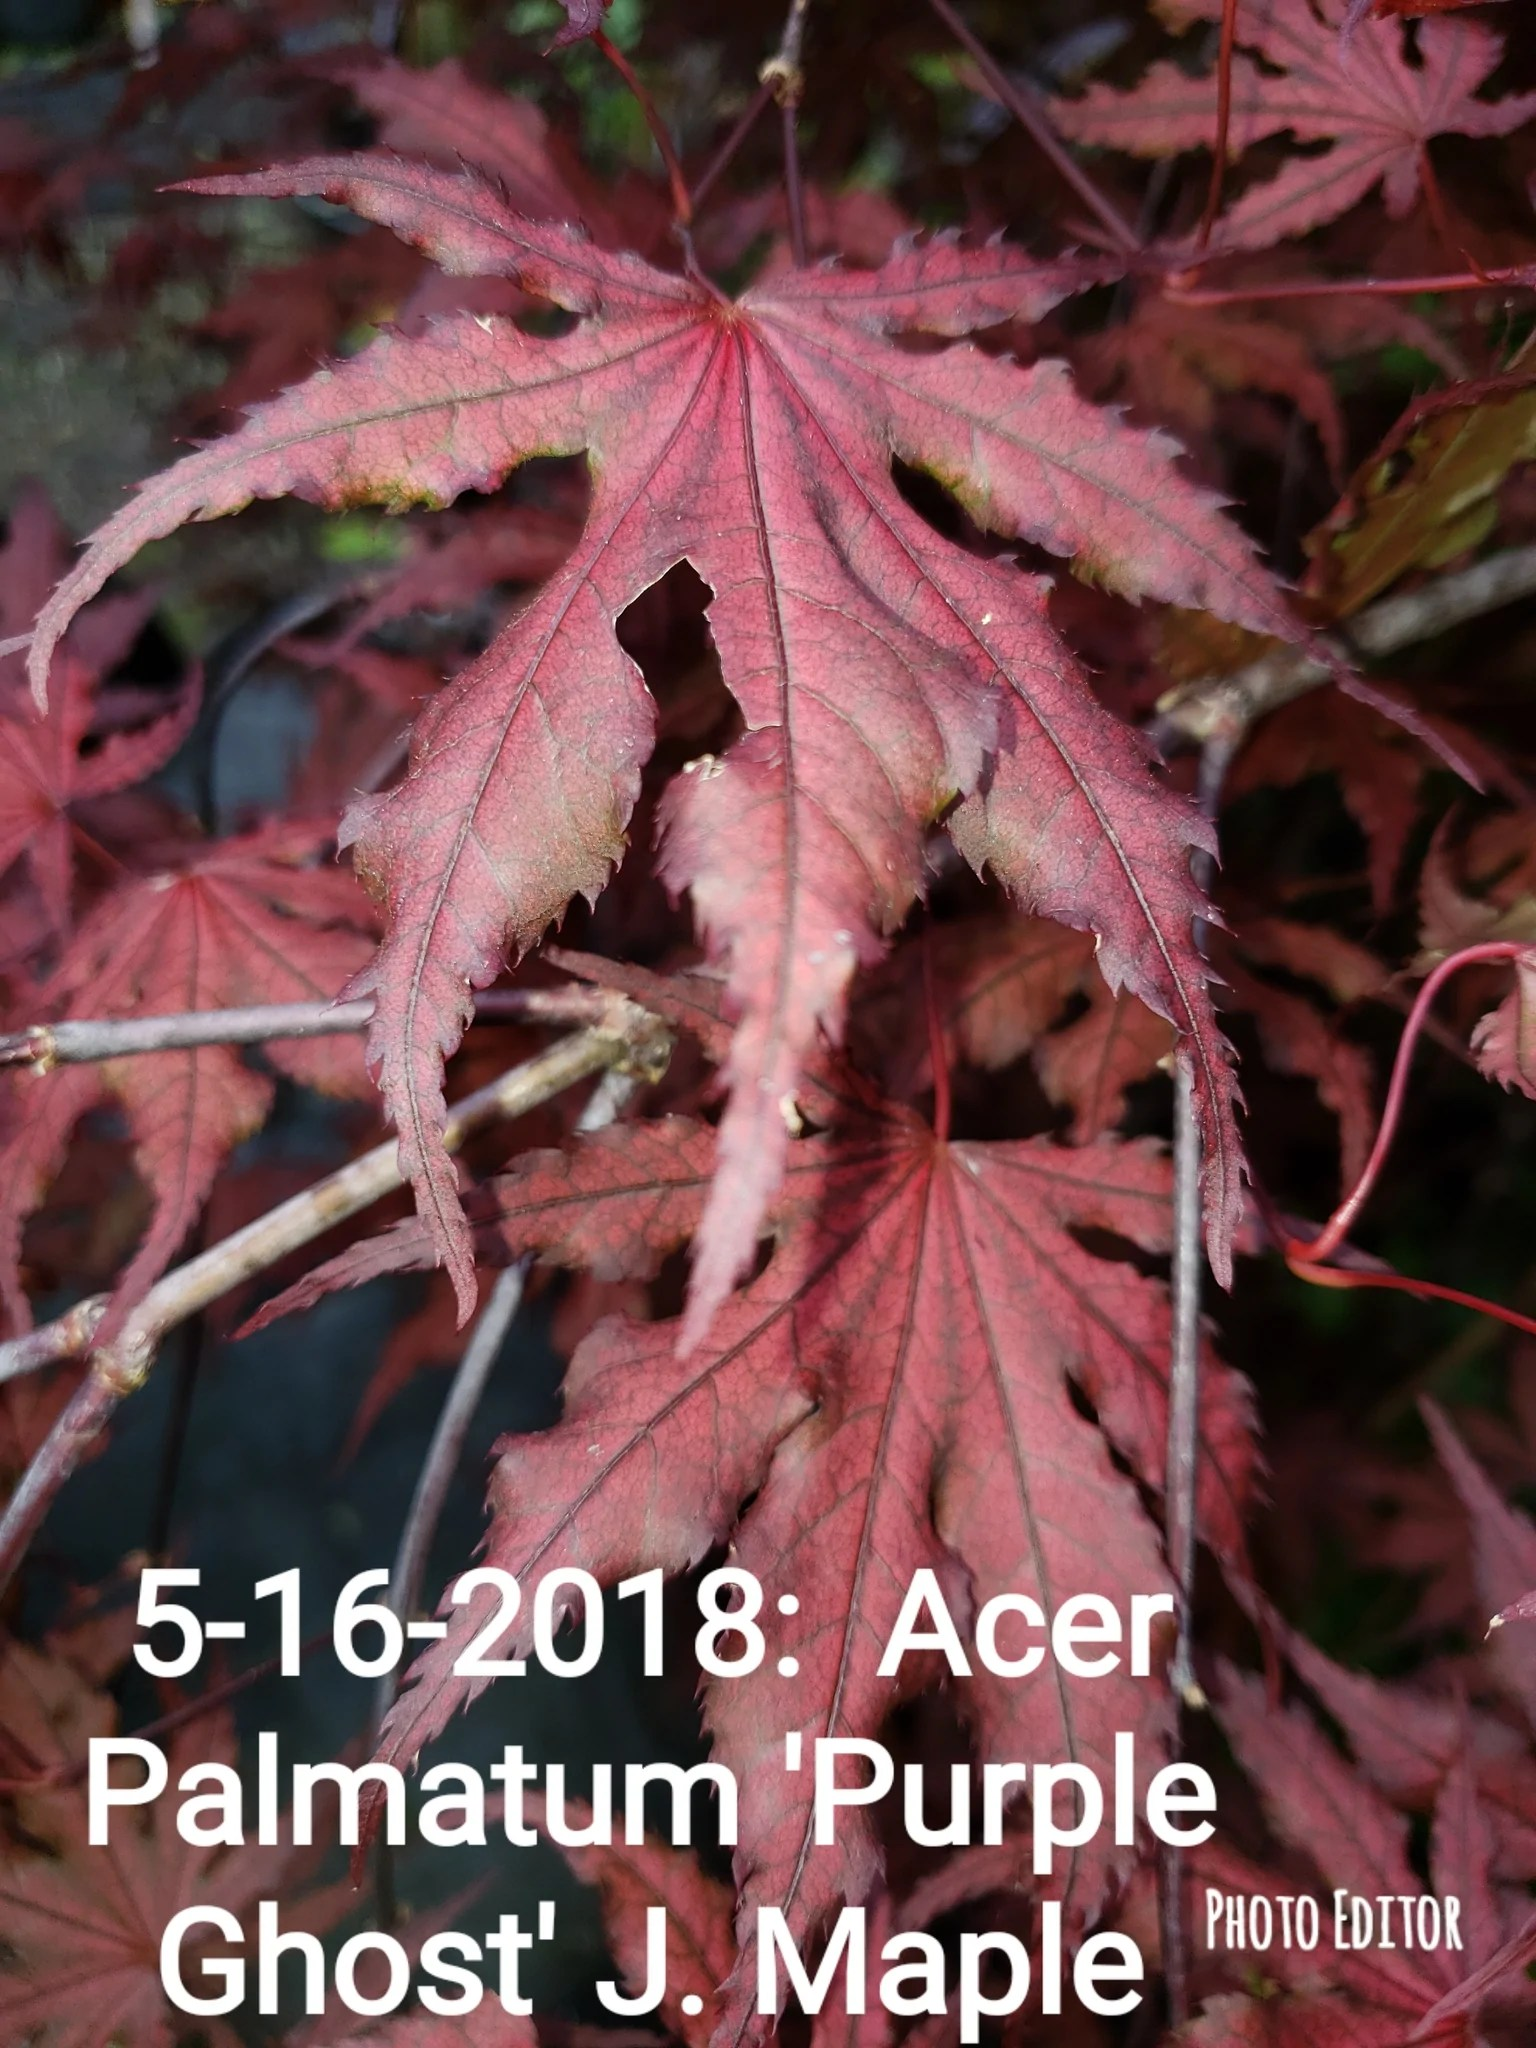 Sophisticated Sale Purple Ghost Japanese Maple Acer Palmatum Japanese Maples Acer Palmatum Japanese Maples Bleuwood Nursery Purple Ghost Japanese Maple Bonsai Sale houzz-03 Purple Ghost Japanese Maple